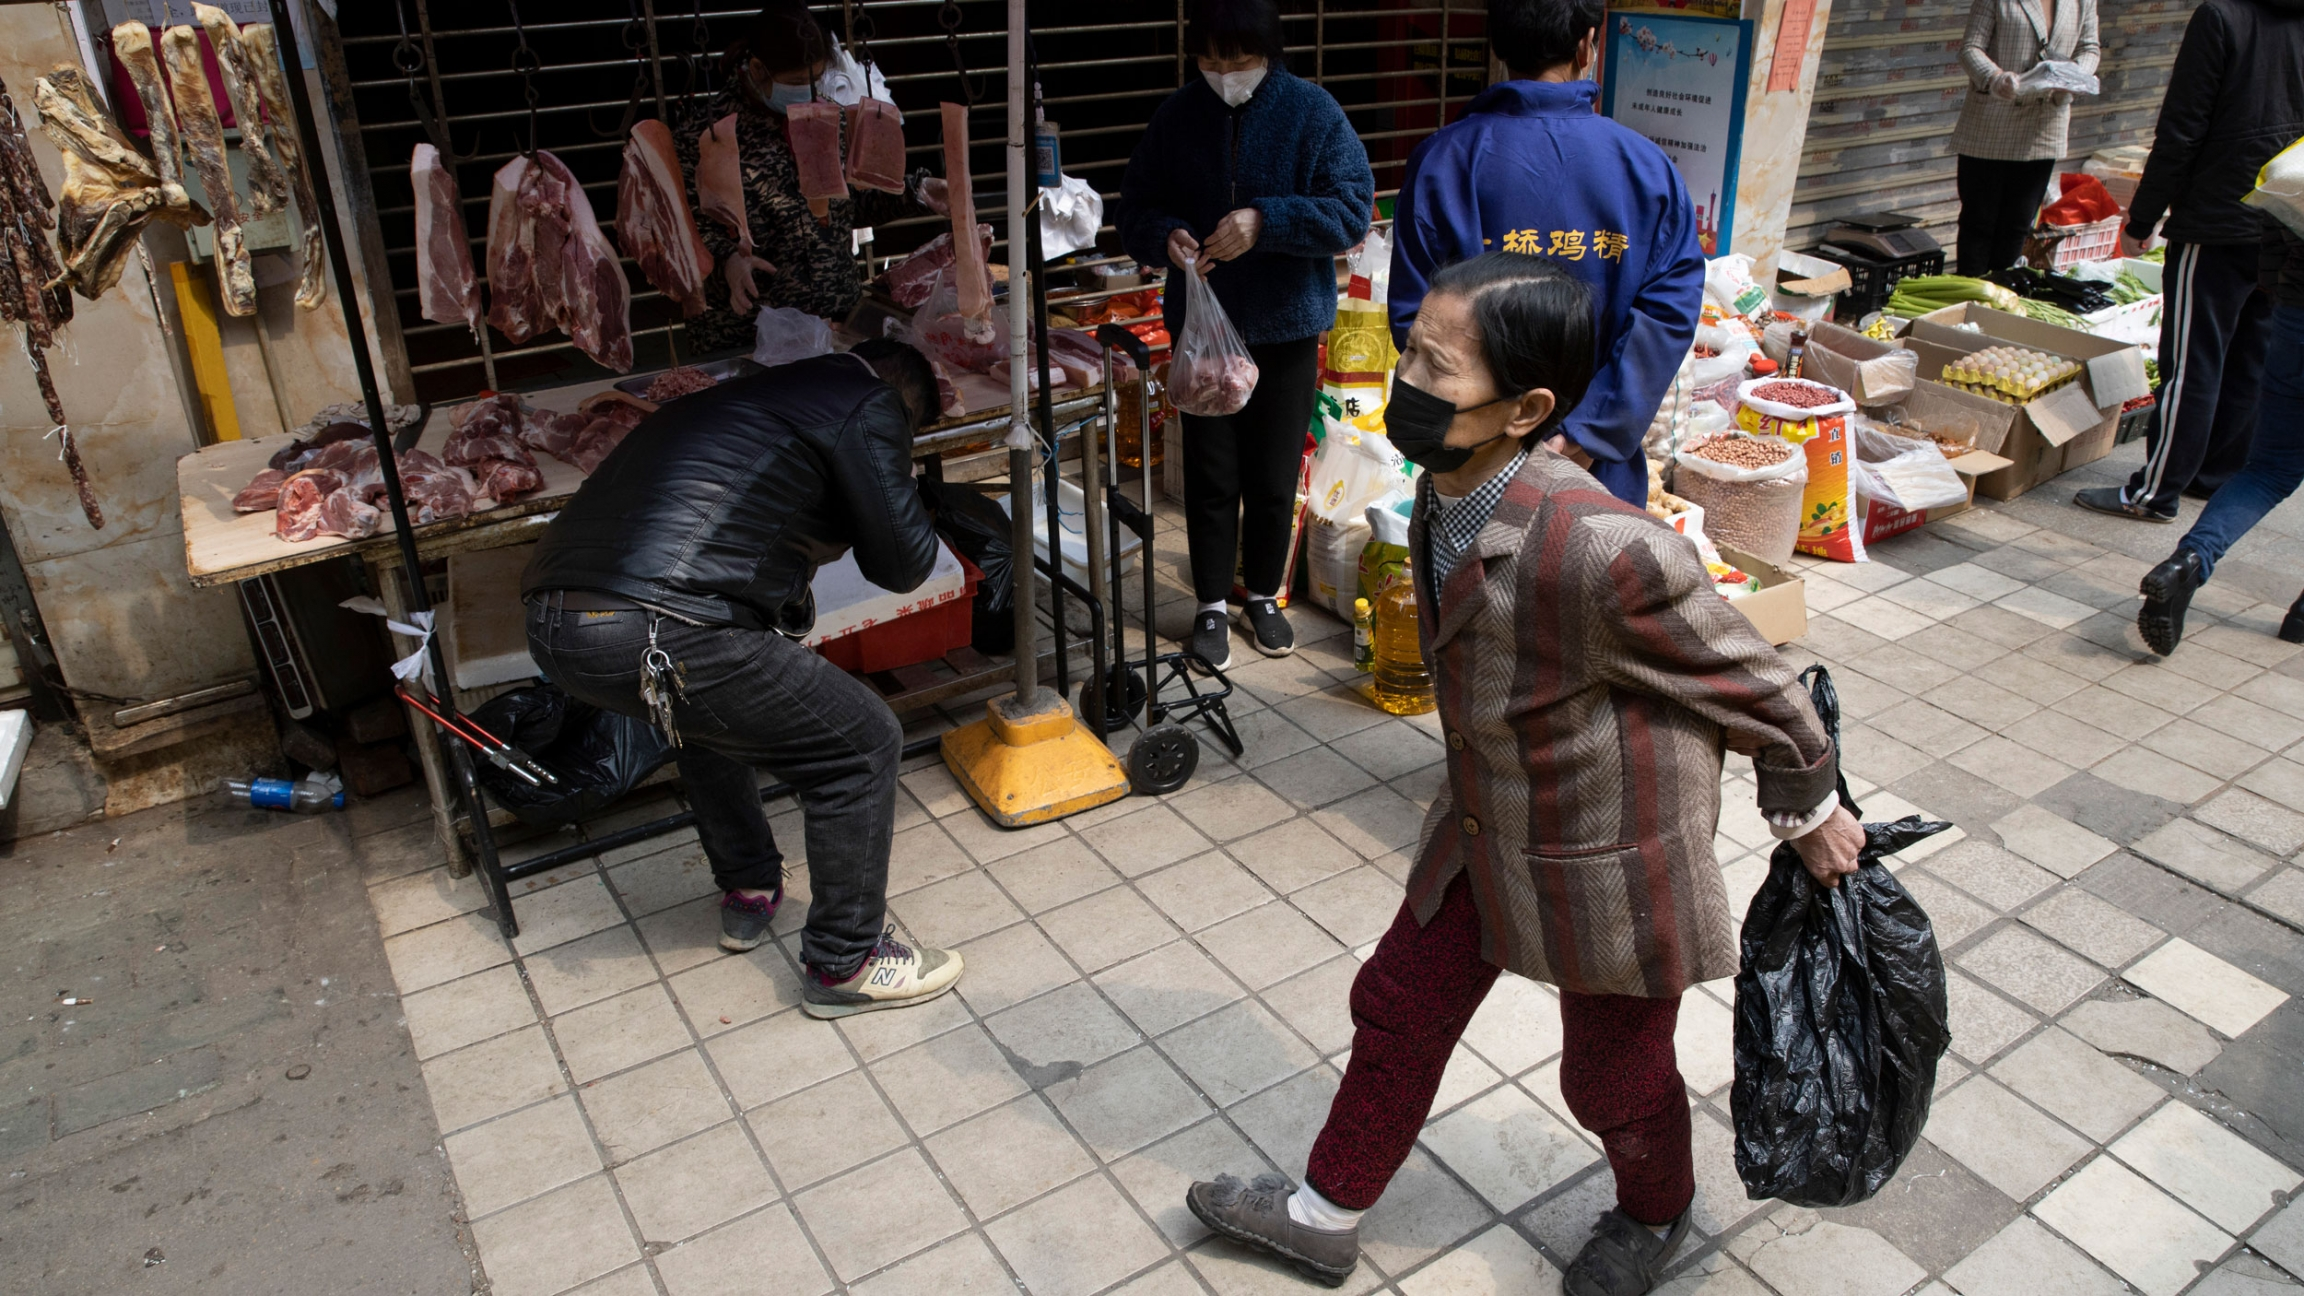 Several people are shown outside of a partially closed market stall with several pieces of meat hanging in the background.